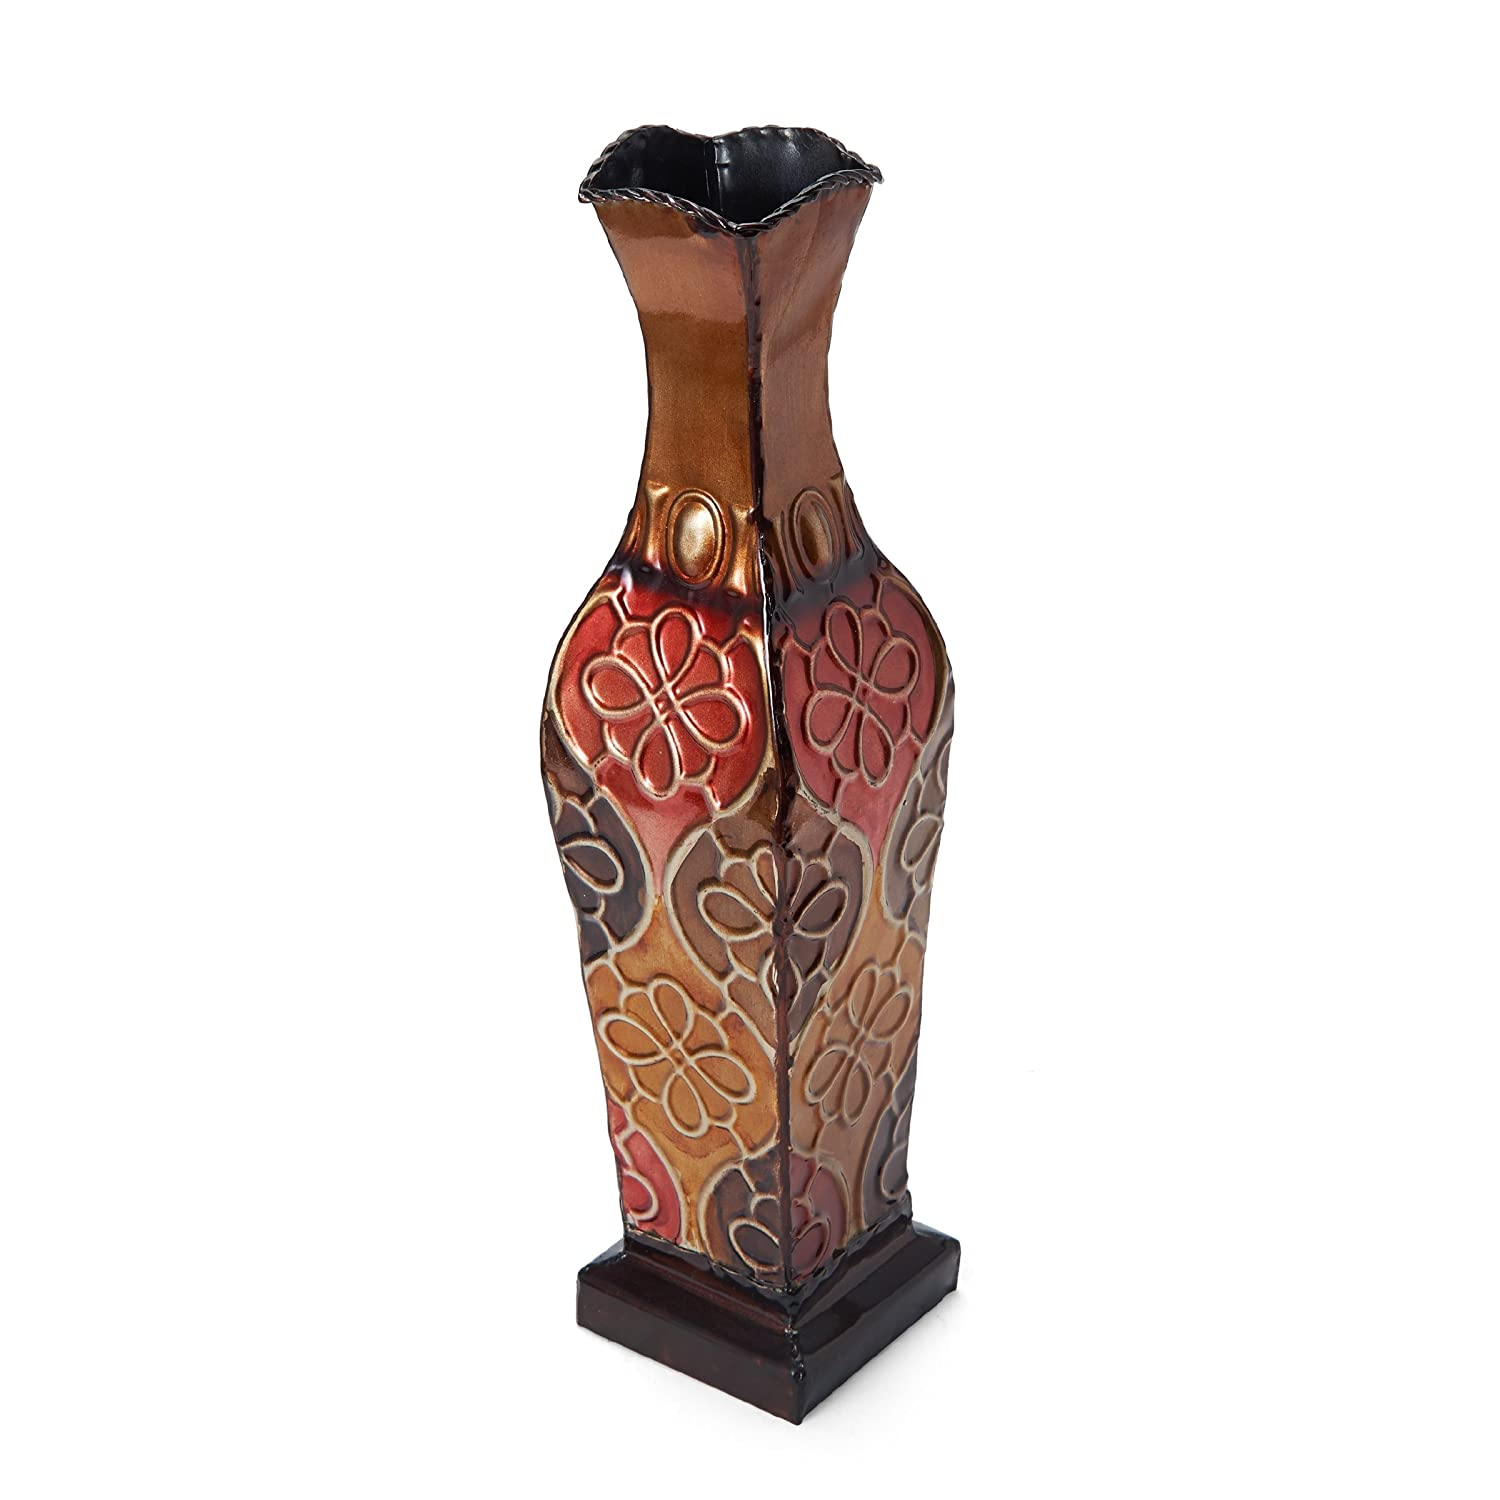 Amazon elements embossed metal floral decorative vase 17 amazon elements embossed metal floral decorative vase 17 inch home kitchen reviewsmspy